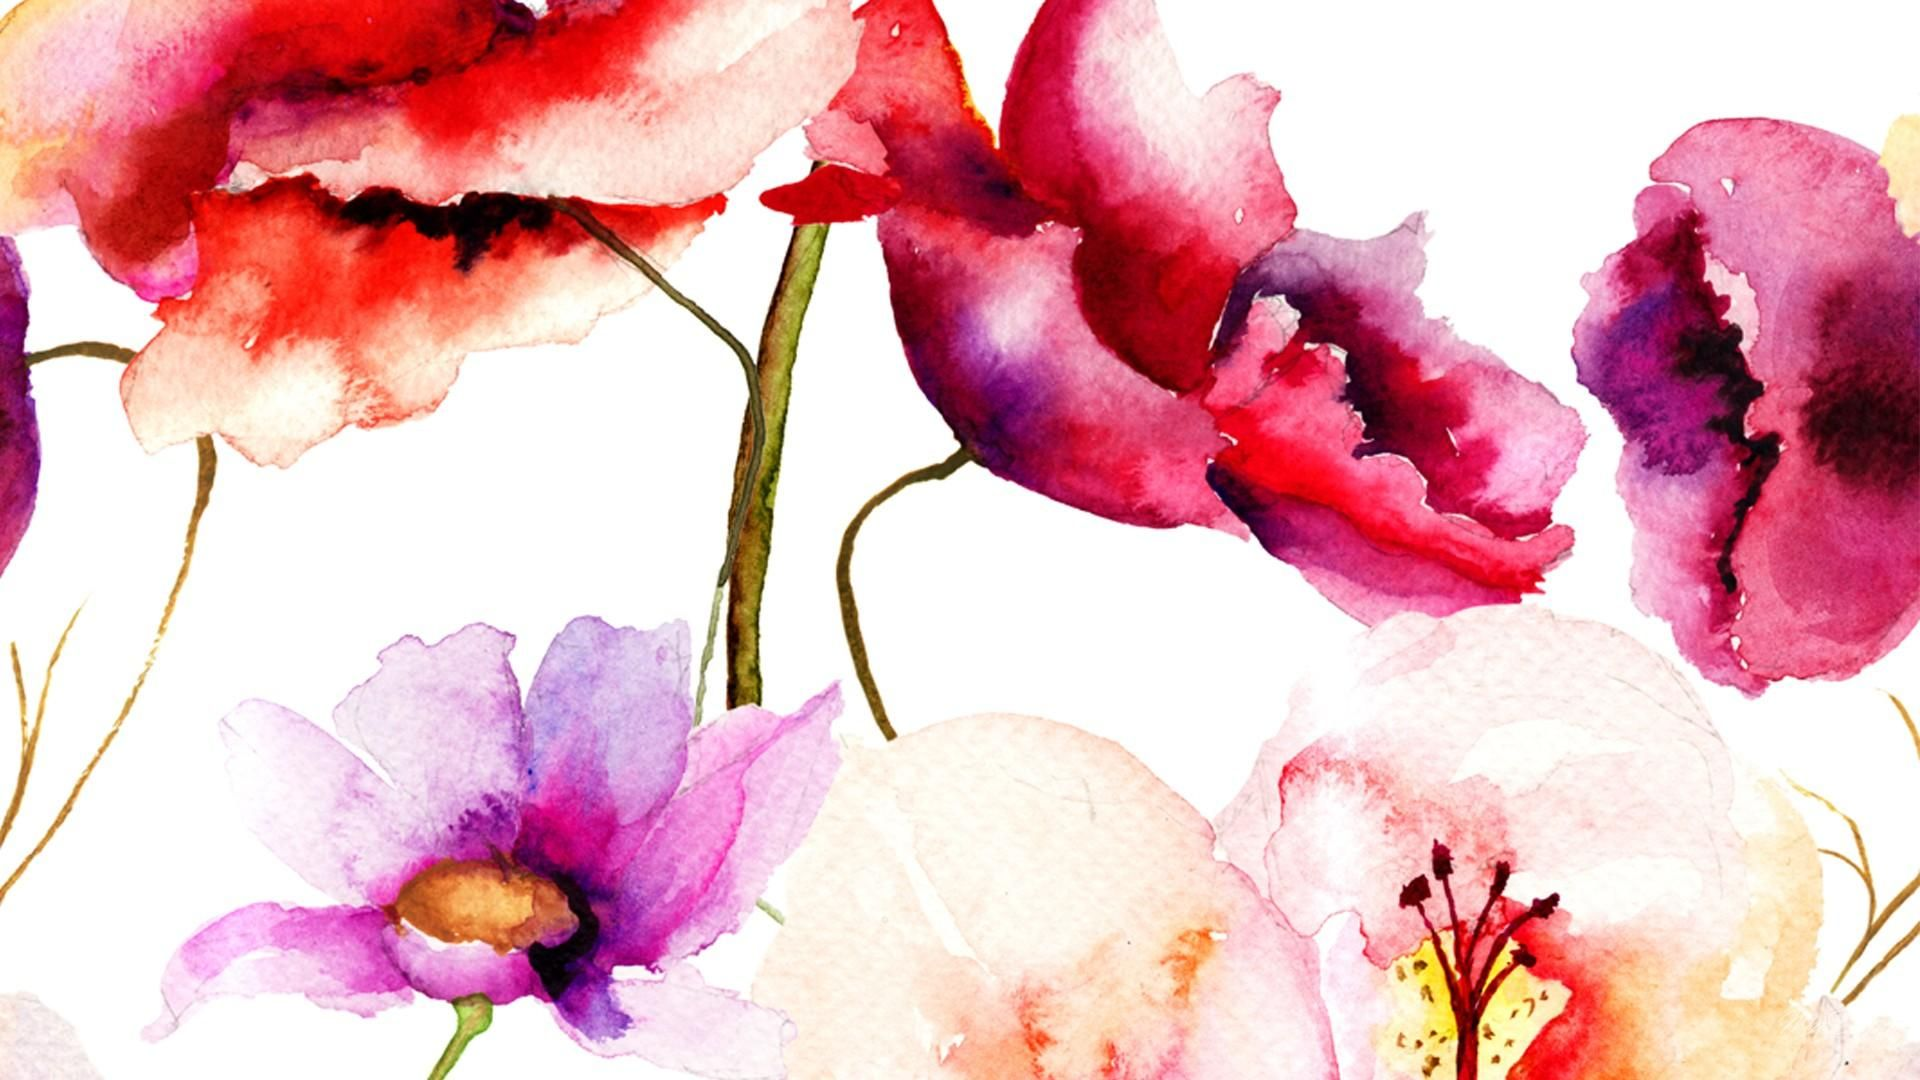 art flowers background wallpaper - photo #15